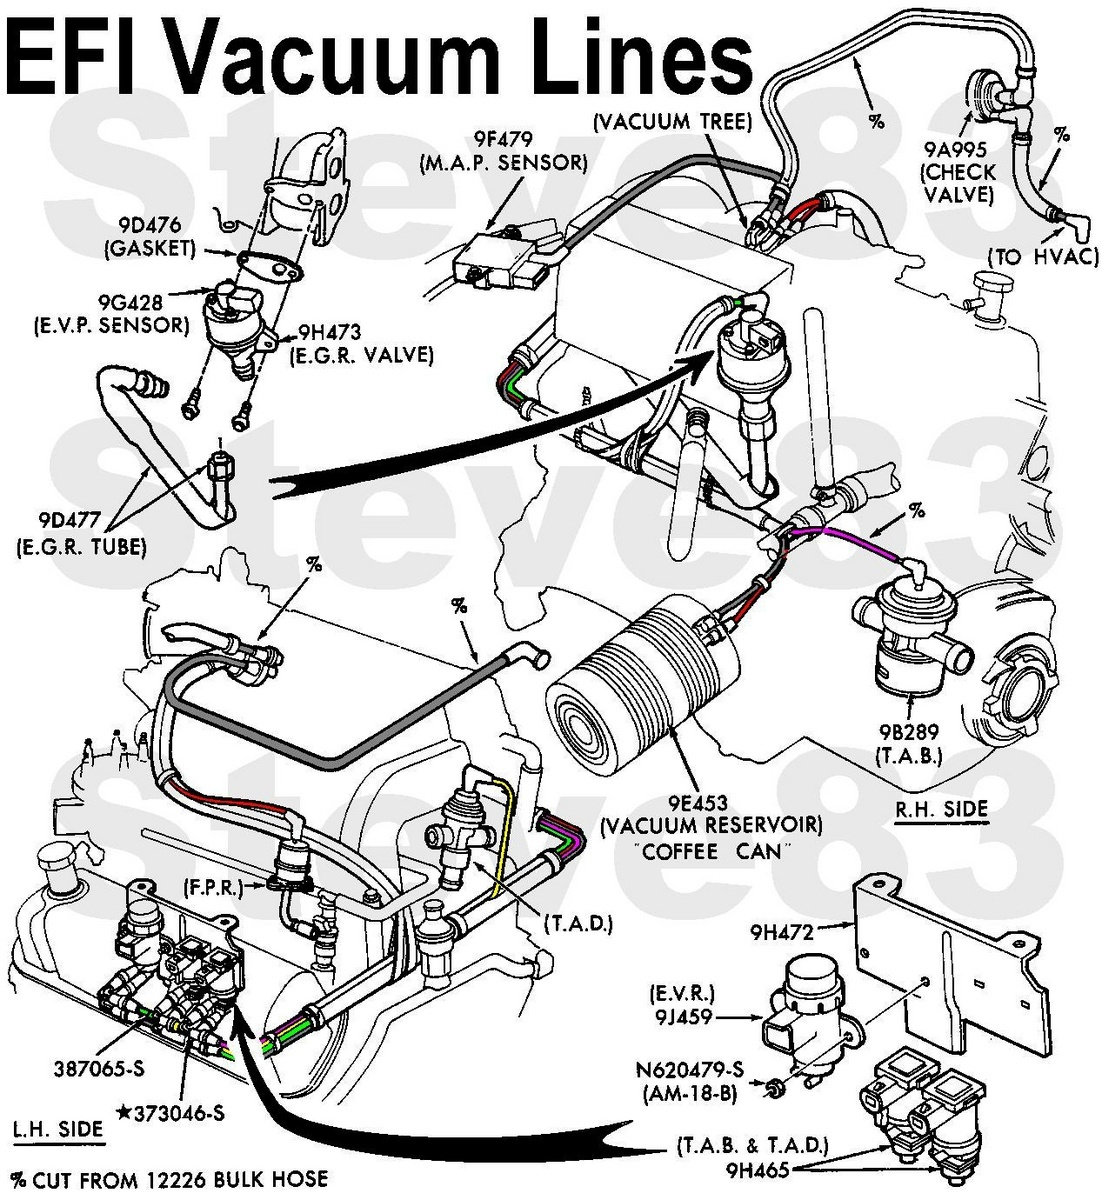 1997 Ford F 150 Engine Diagram Manual Guide Wiring Questions Is There A For Vacuum Hoses On 1990 Rh Cargurus Com 46 23 Liter